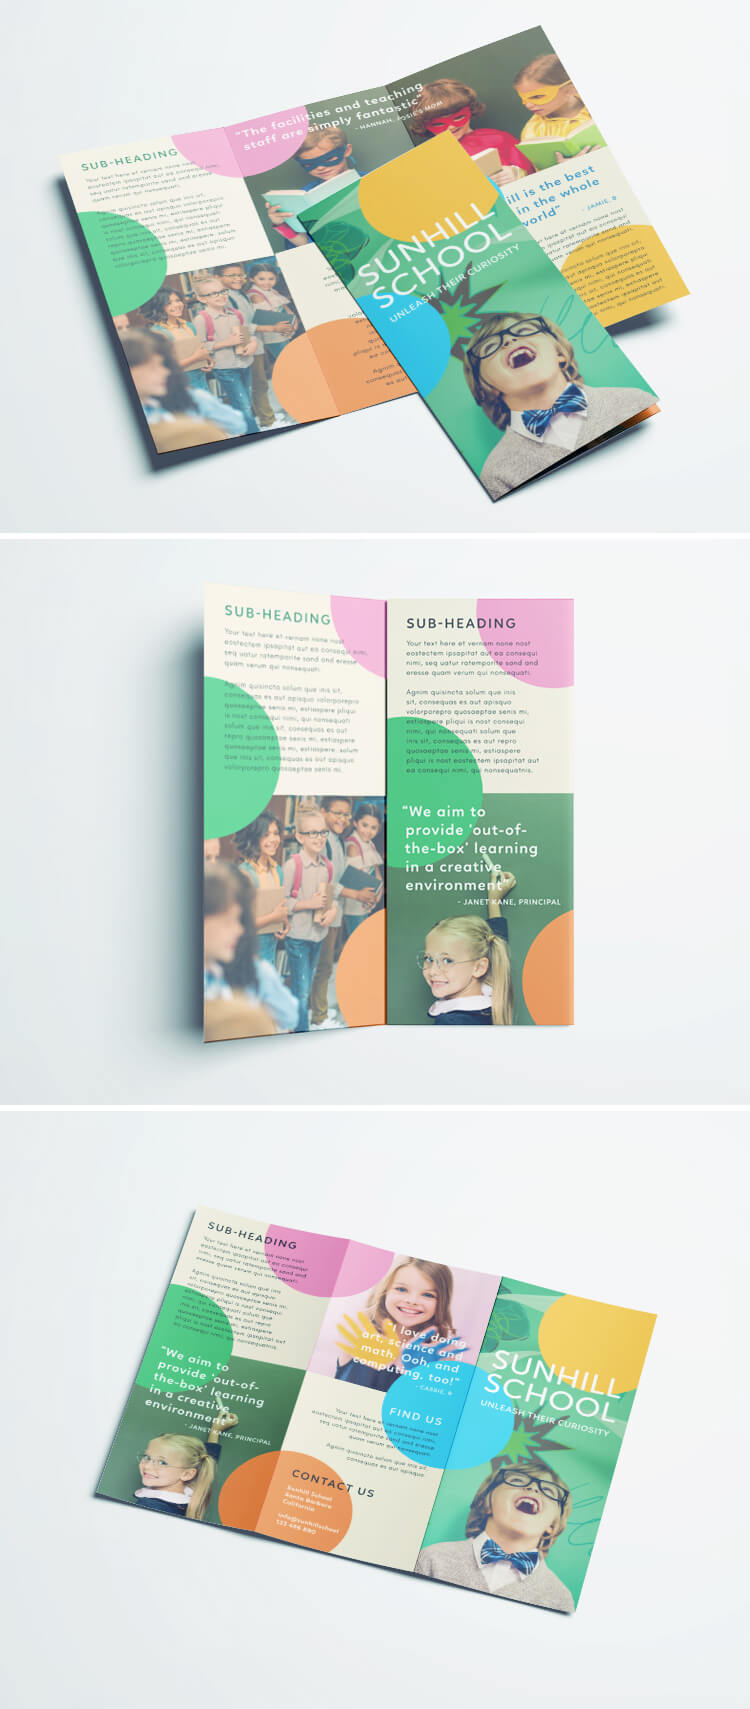 tri fold school kinder garden brochure template design cool indesignn brochure template